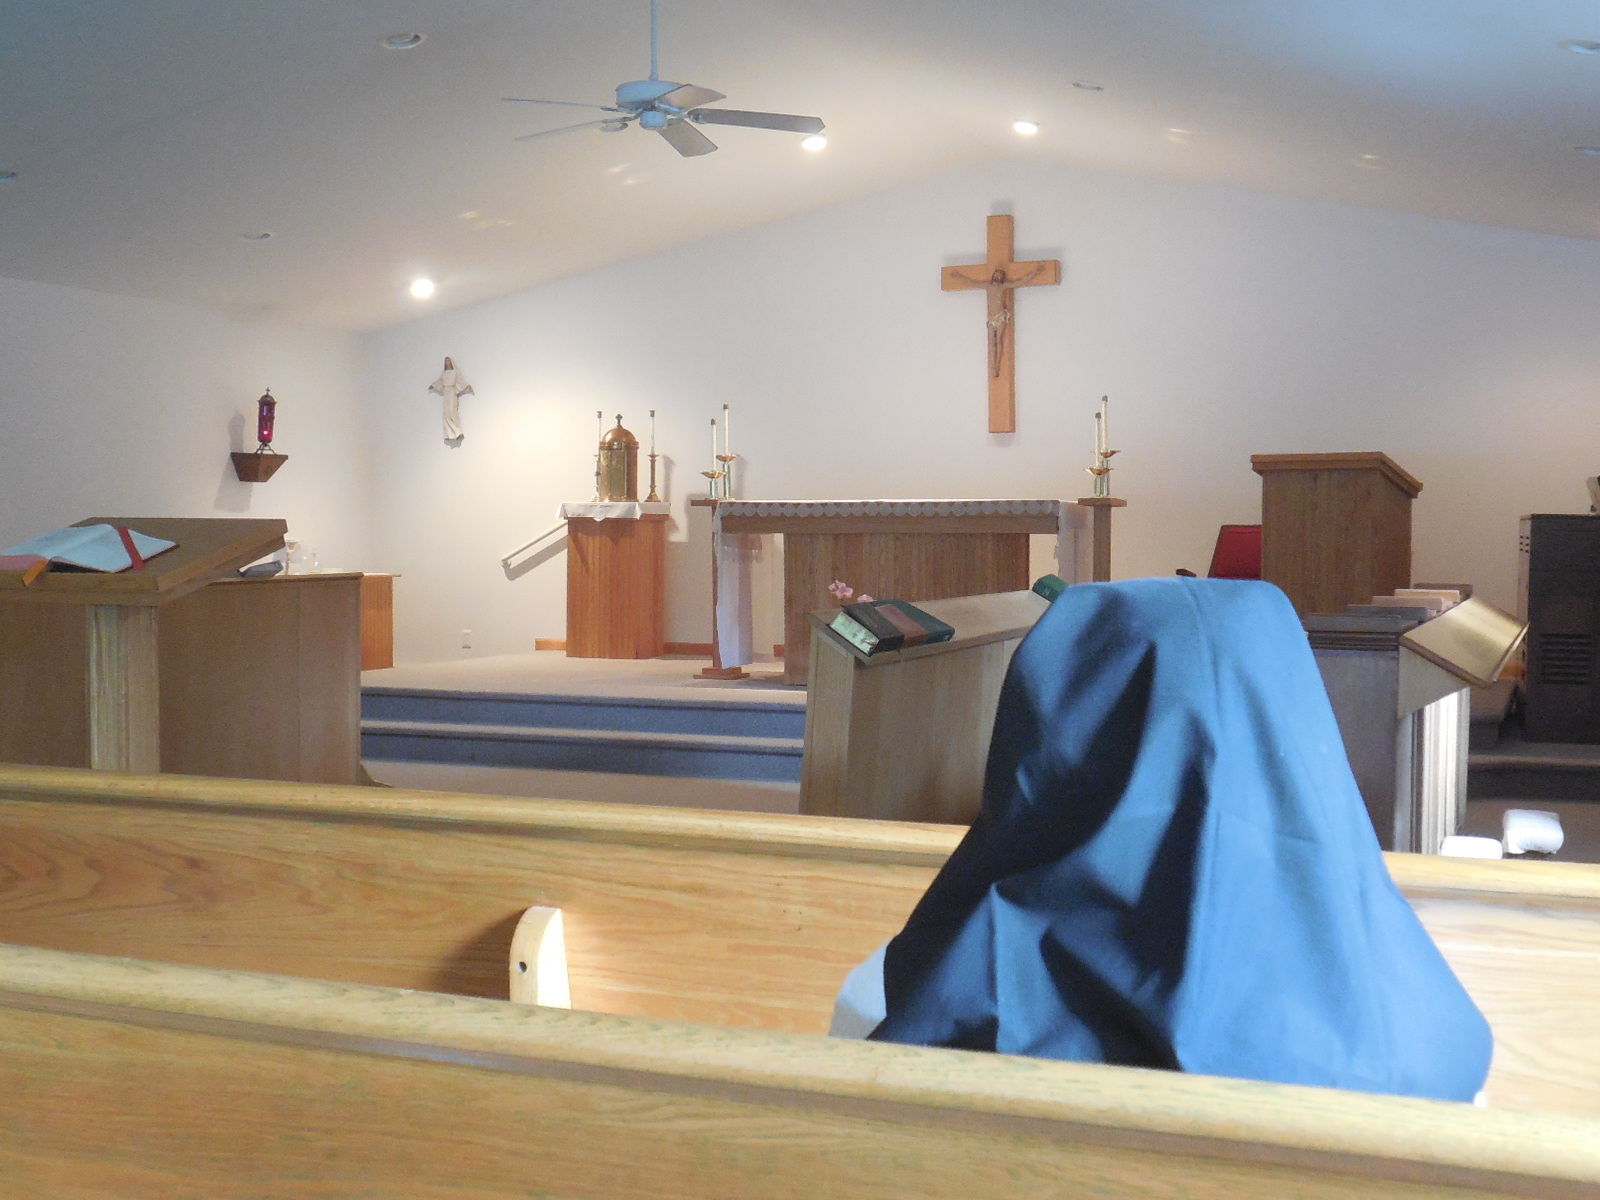 THE SISTERS SPEND AT LEAST ONE HOUR A DAY IN CONTEMPLATIVE PRAYER IN THE PRESENCE OF THE BLESSED SACRAMENT